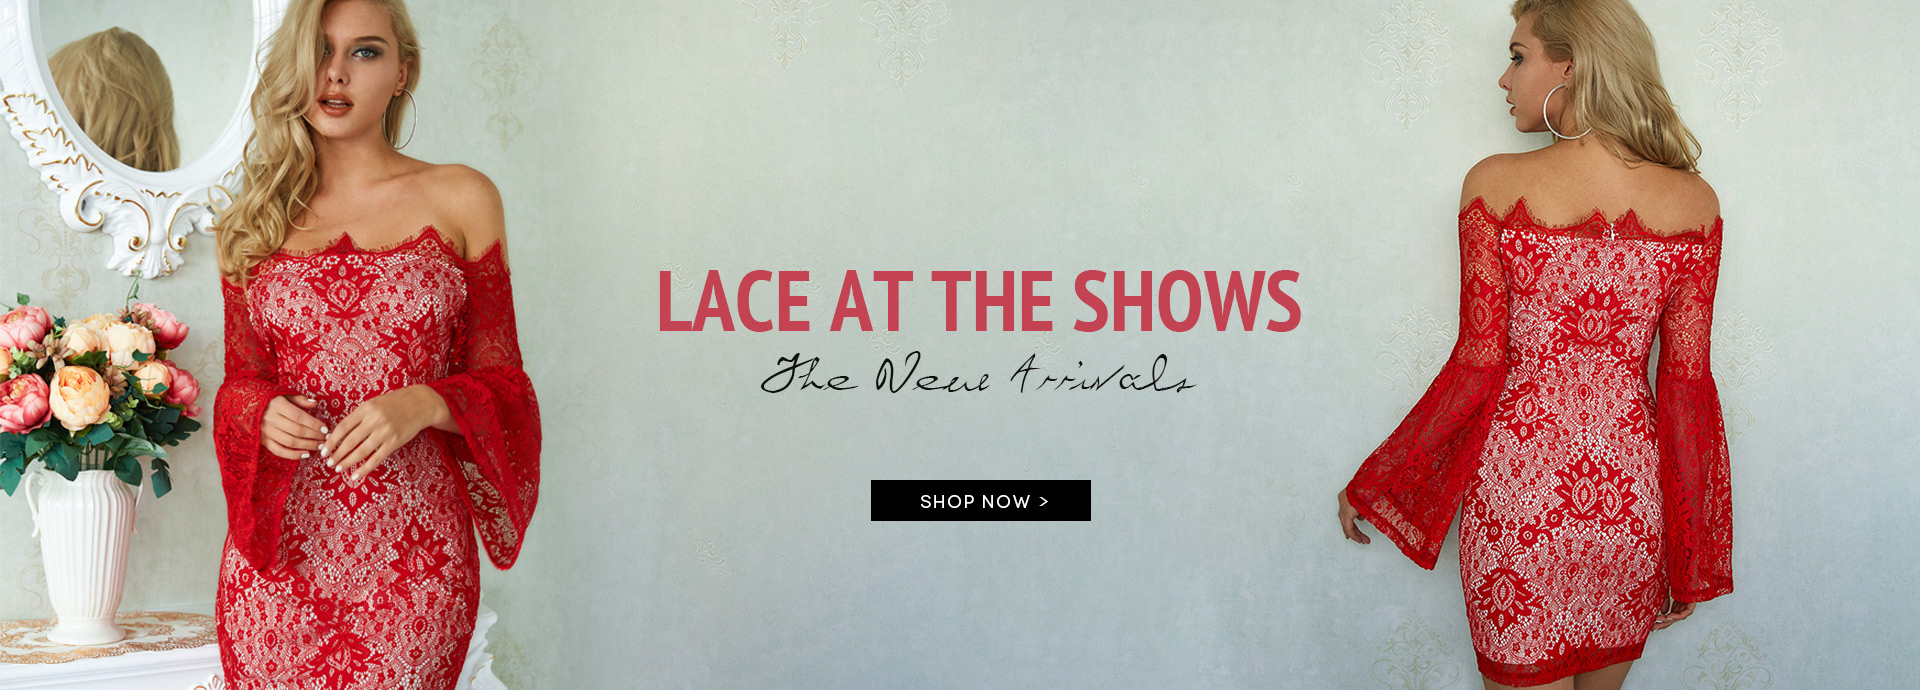 Lace At The Shows